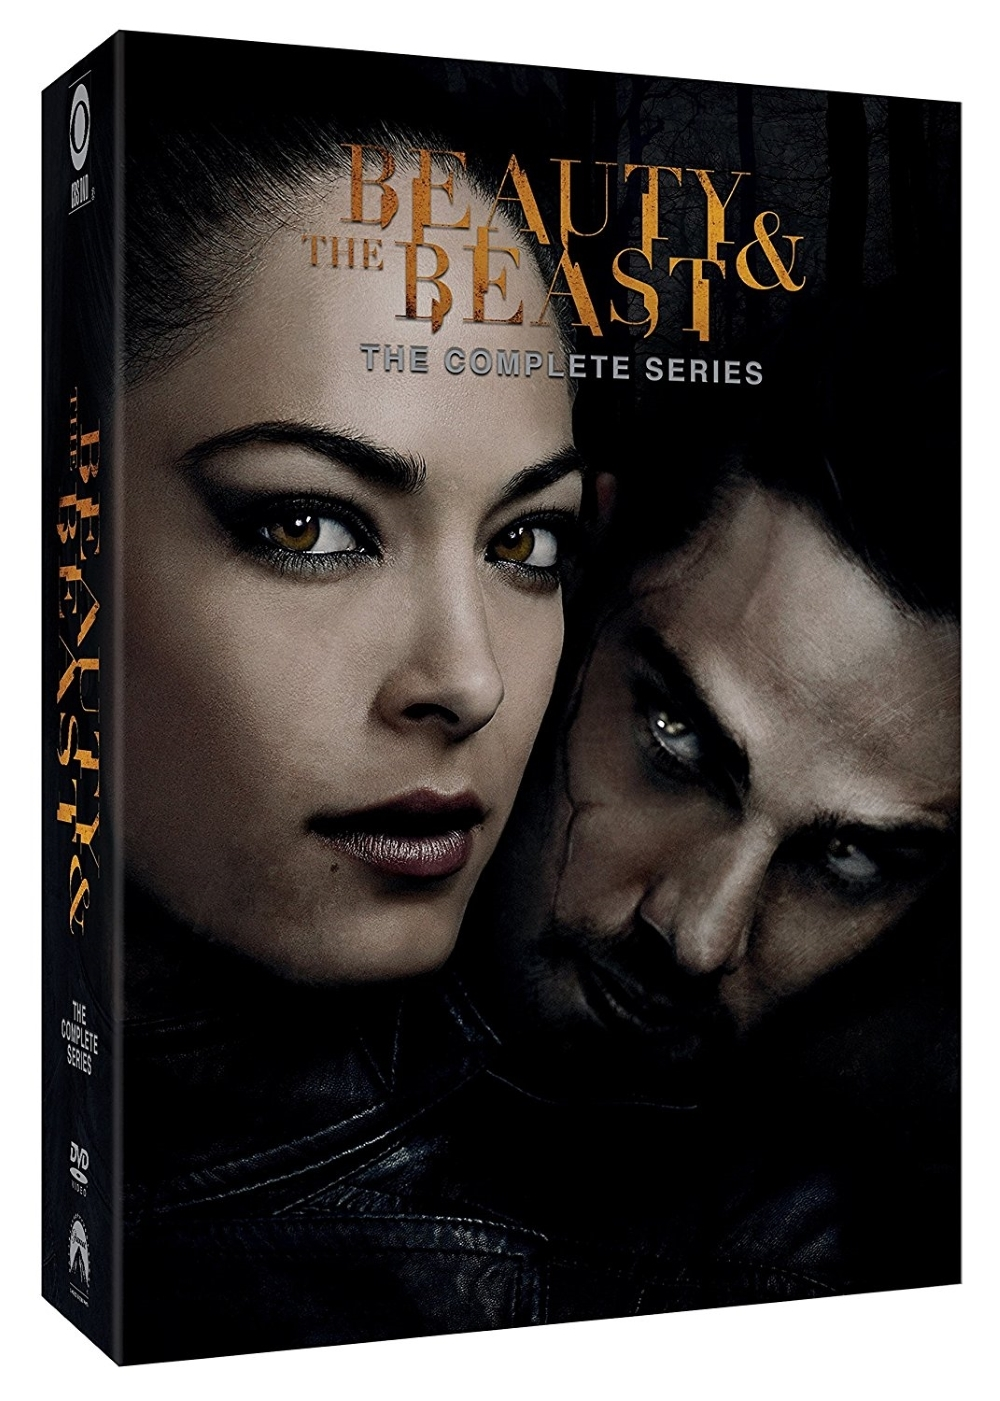 Beauty and the beast complete series season 1 4  2017 20 disc box  1 2 3 4